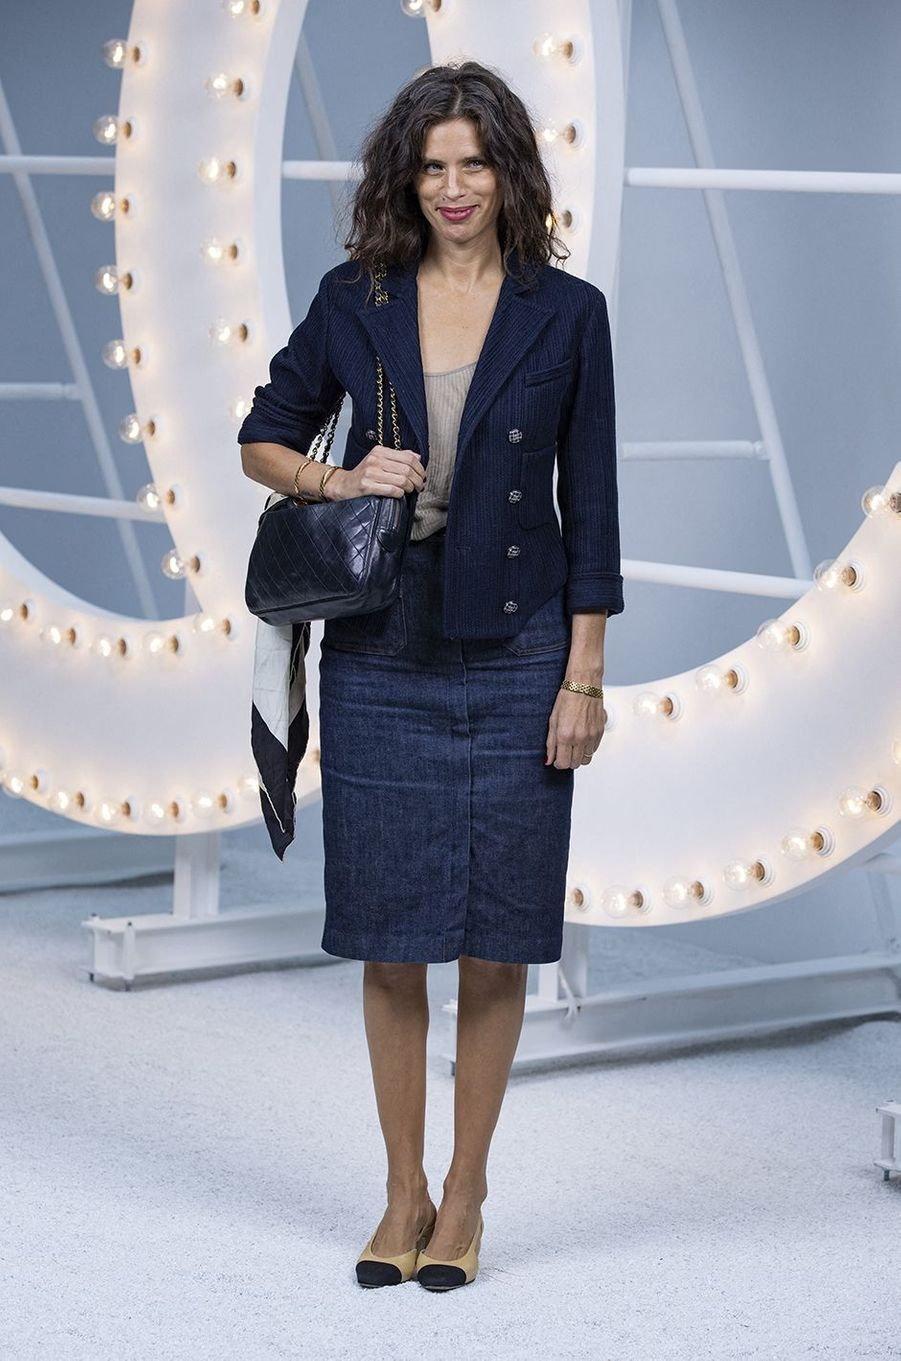 Maïwenn au défilé Chanel lors de la Fashion Week à Paris le 6 octobre 2020